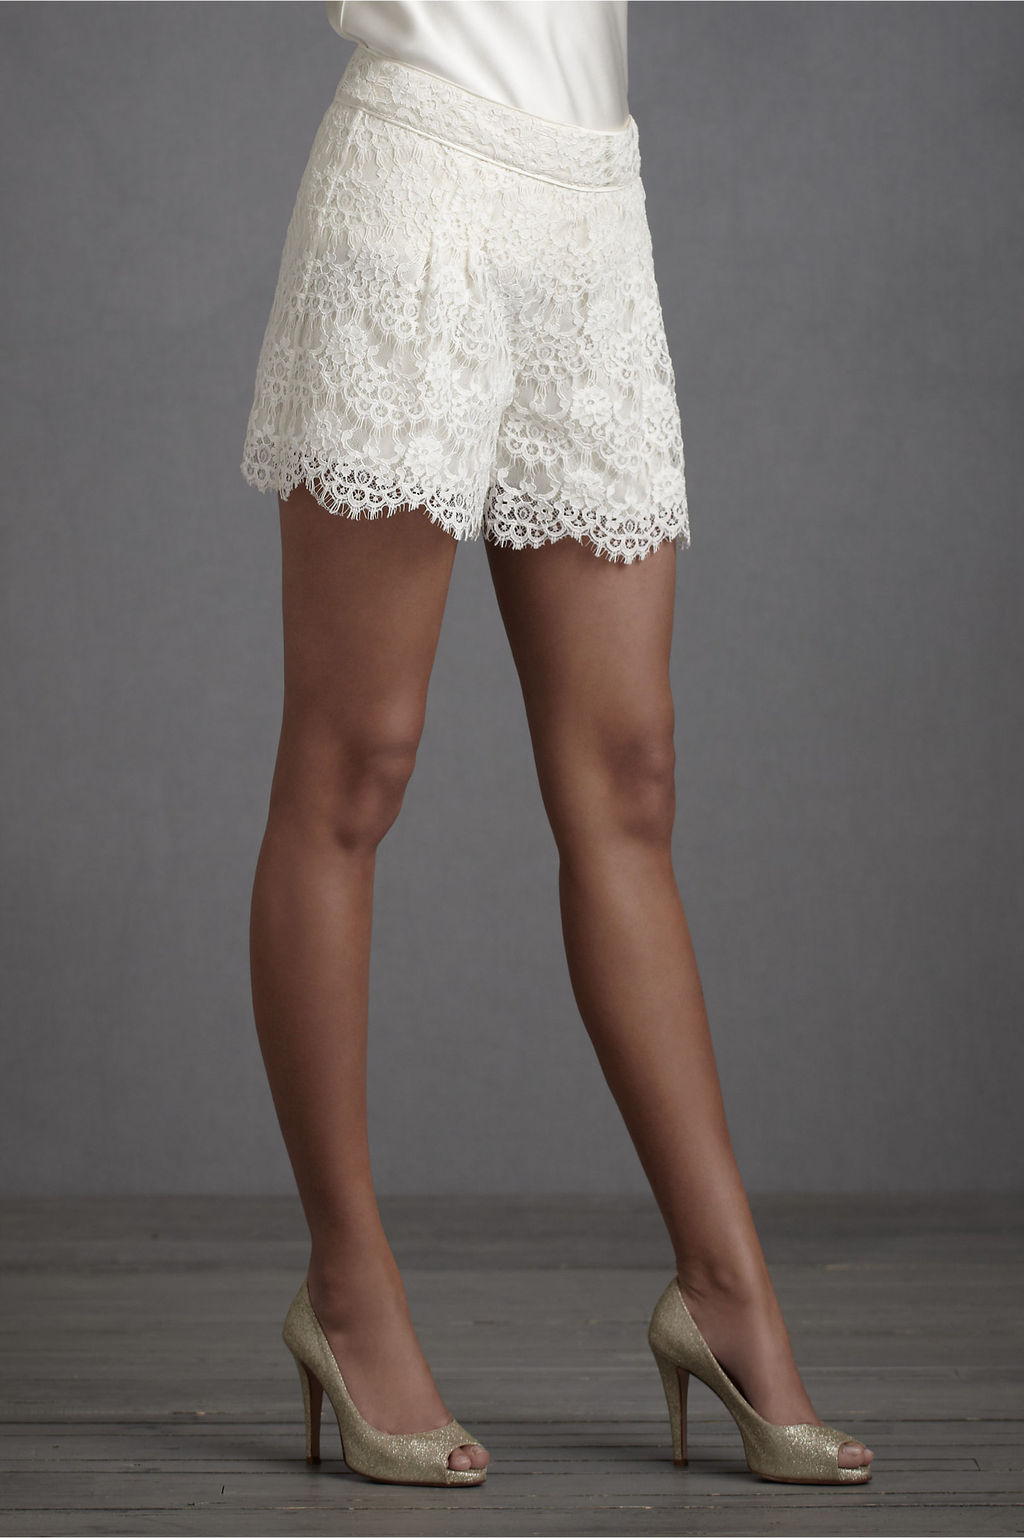 short lace shorts for brides rehearsal dinner or engagement party